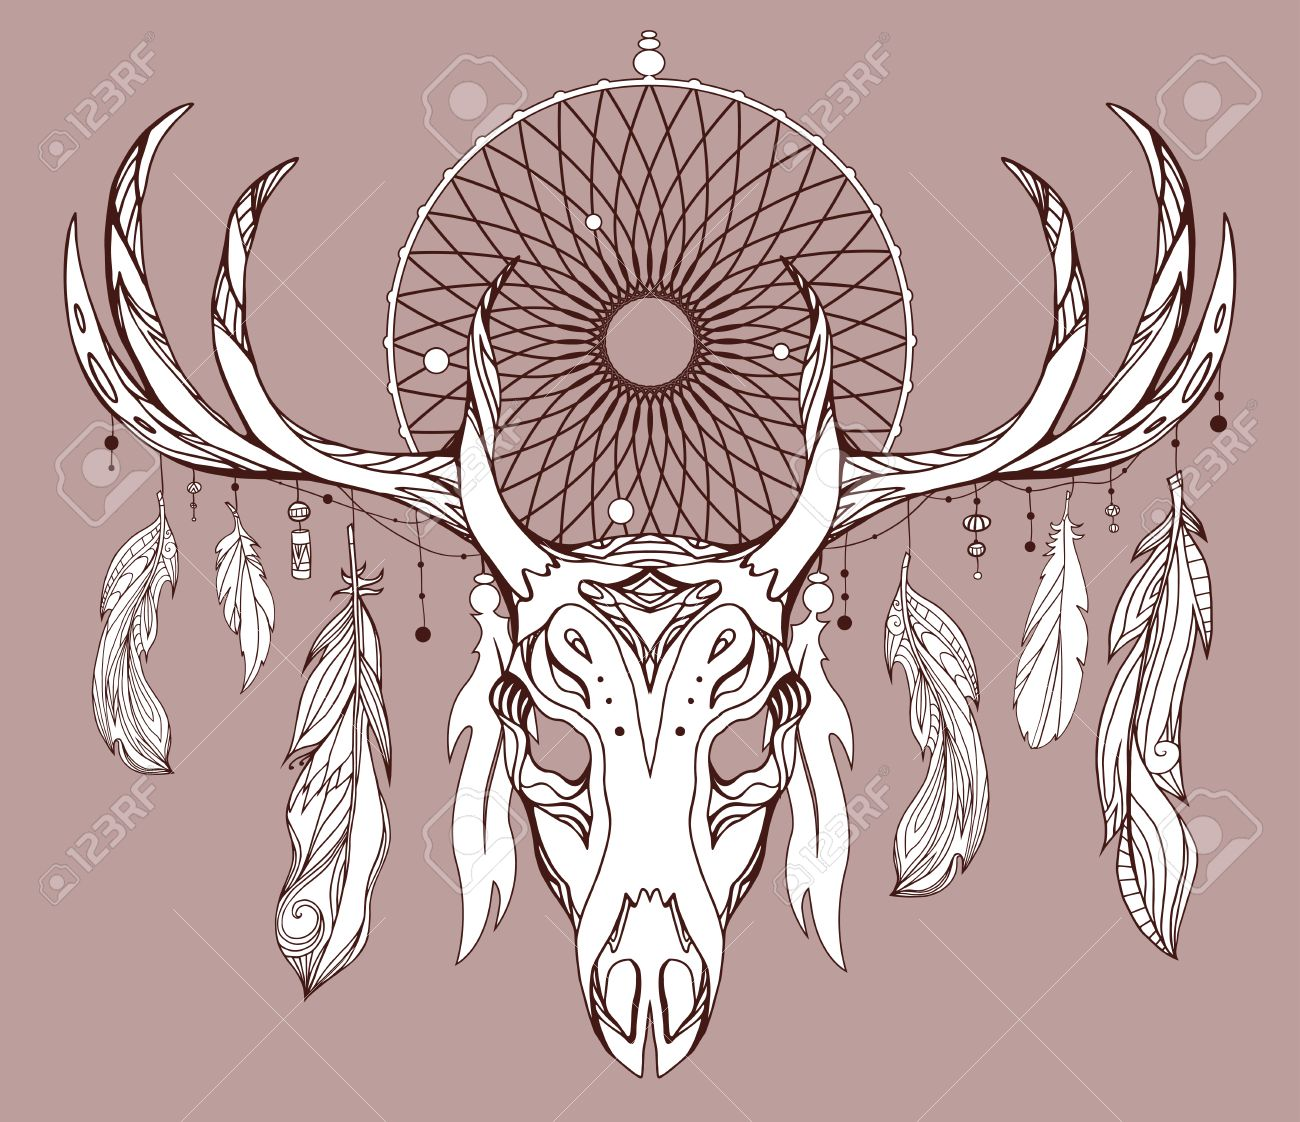 1300x1122 Illustration Of A Deer Skull With Antlers, Dreamcatcher